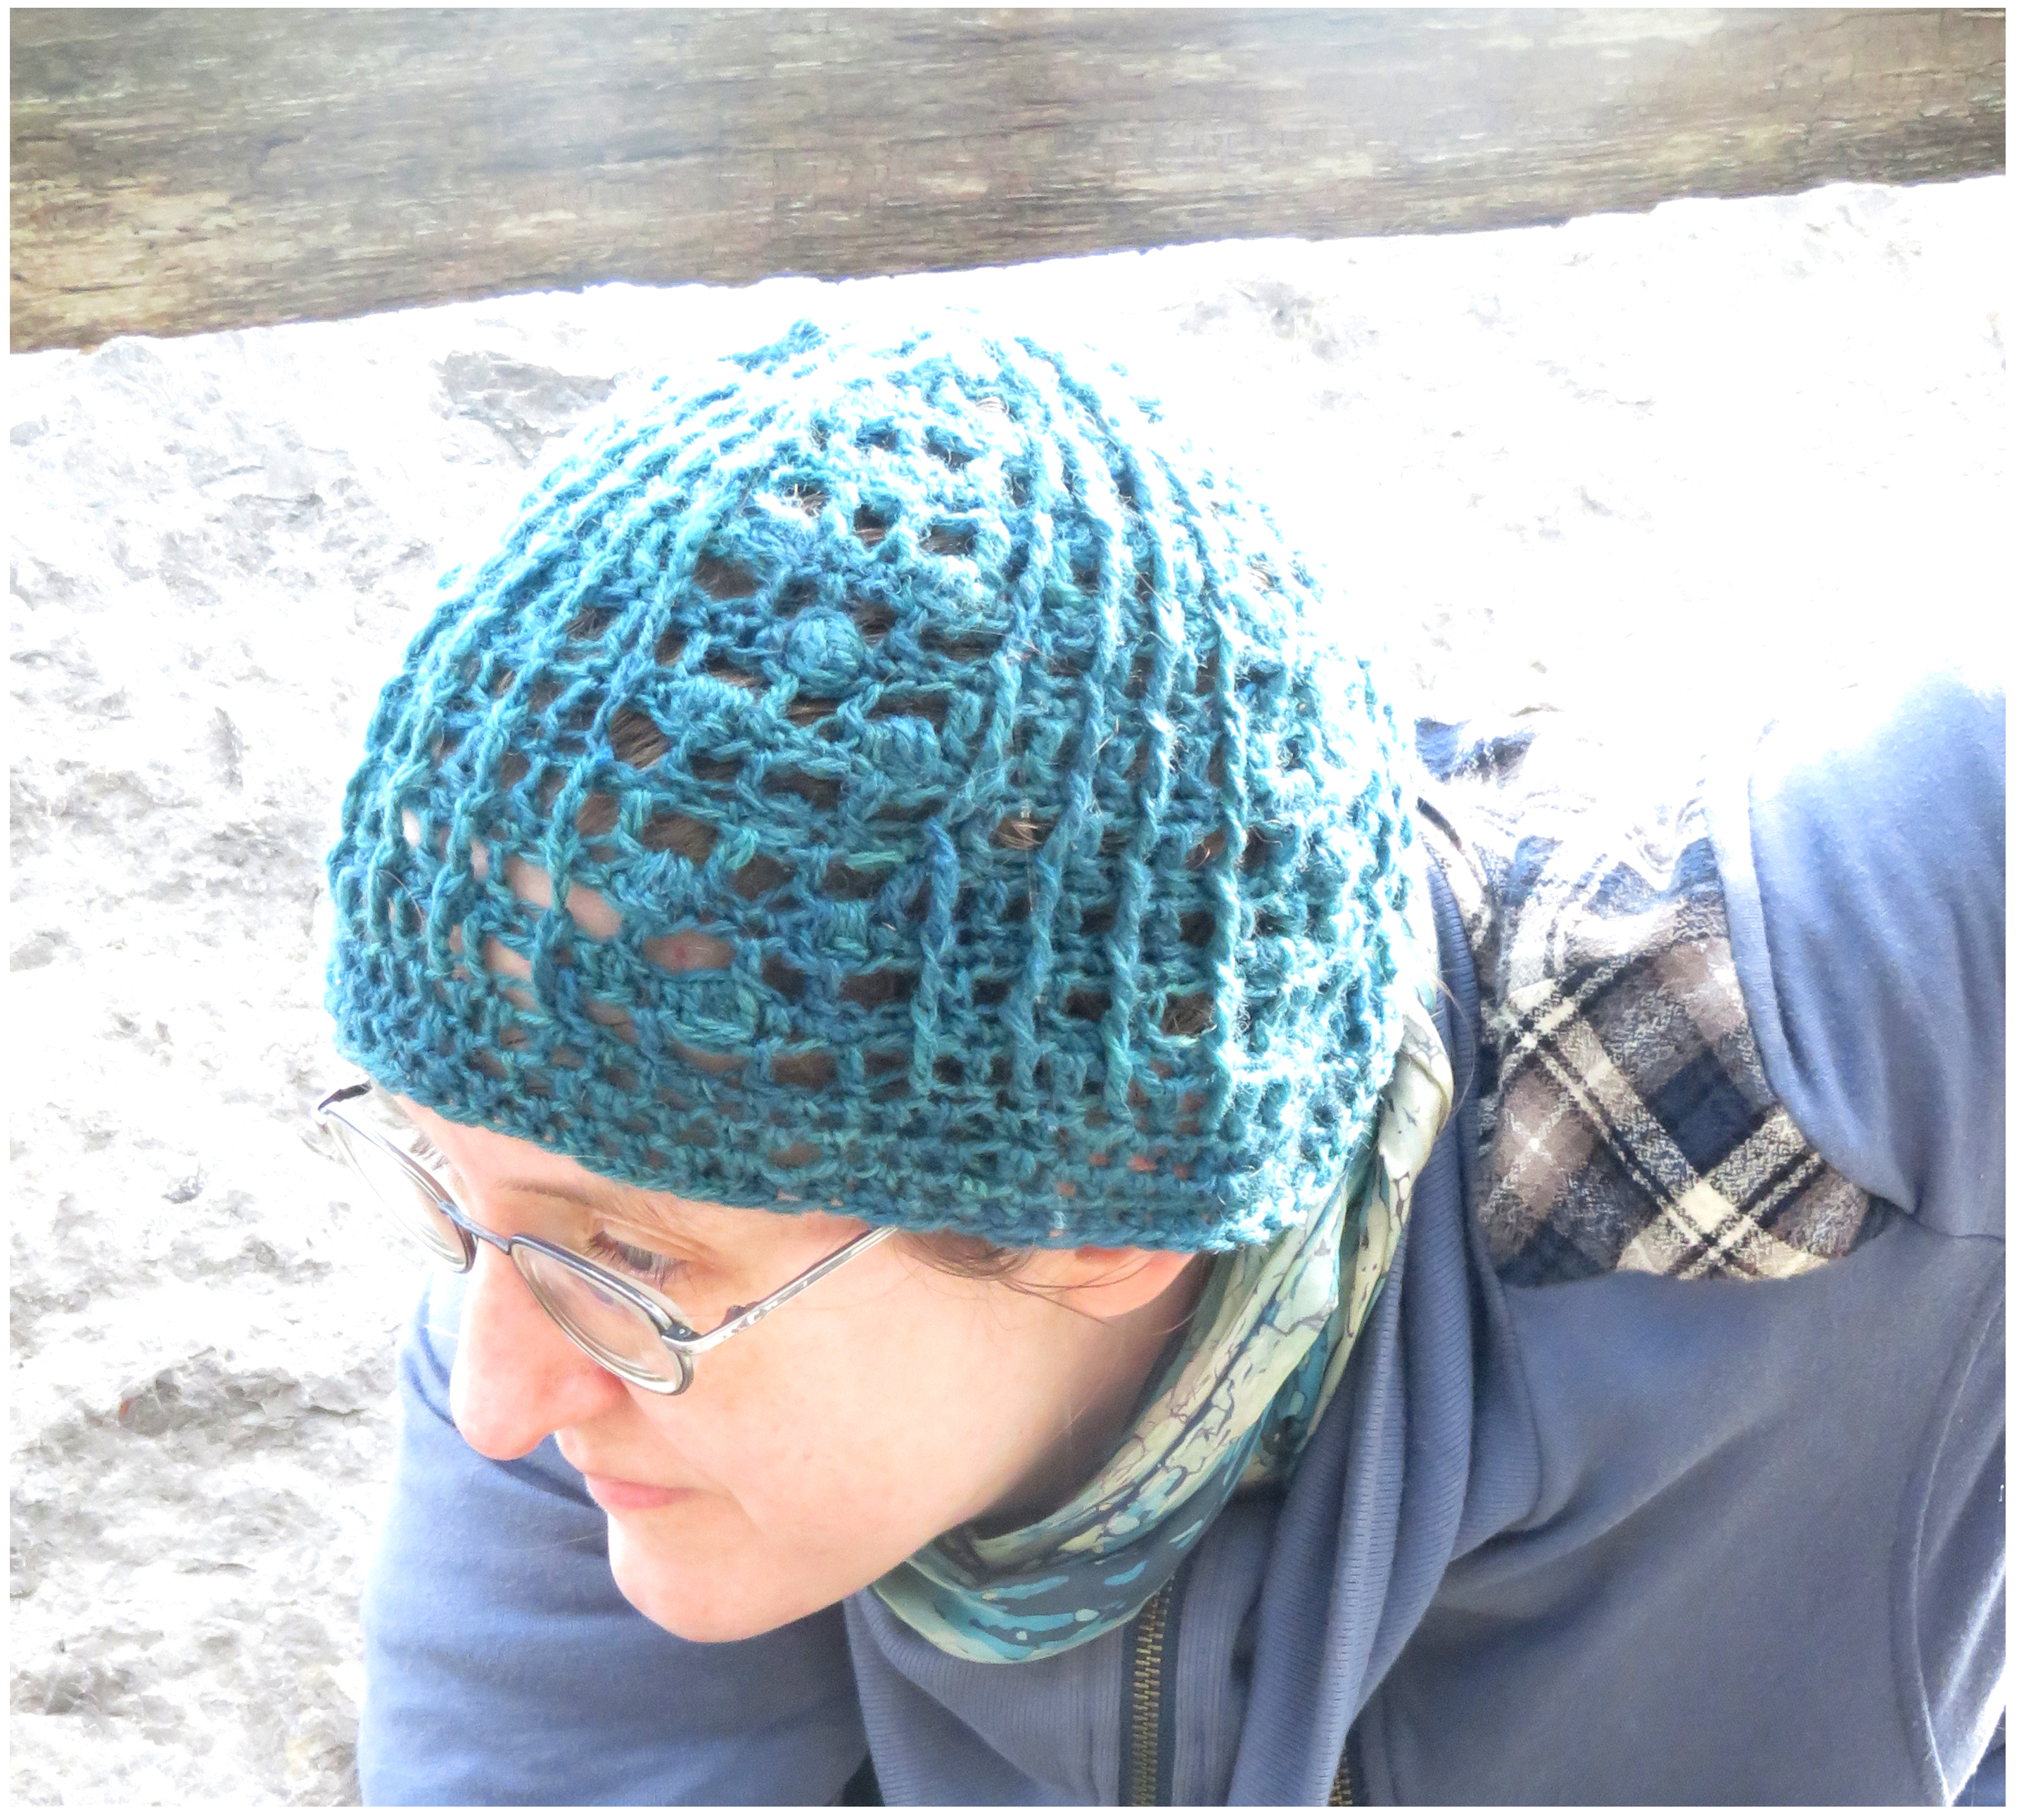 A woman wearing a crochet lace hat.  The hat is made in a dark teal yarn; with textured post stitches and crochet bobbles.